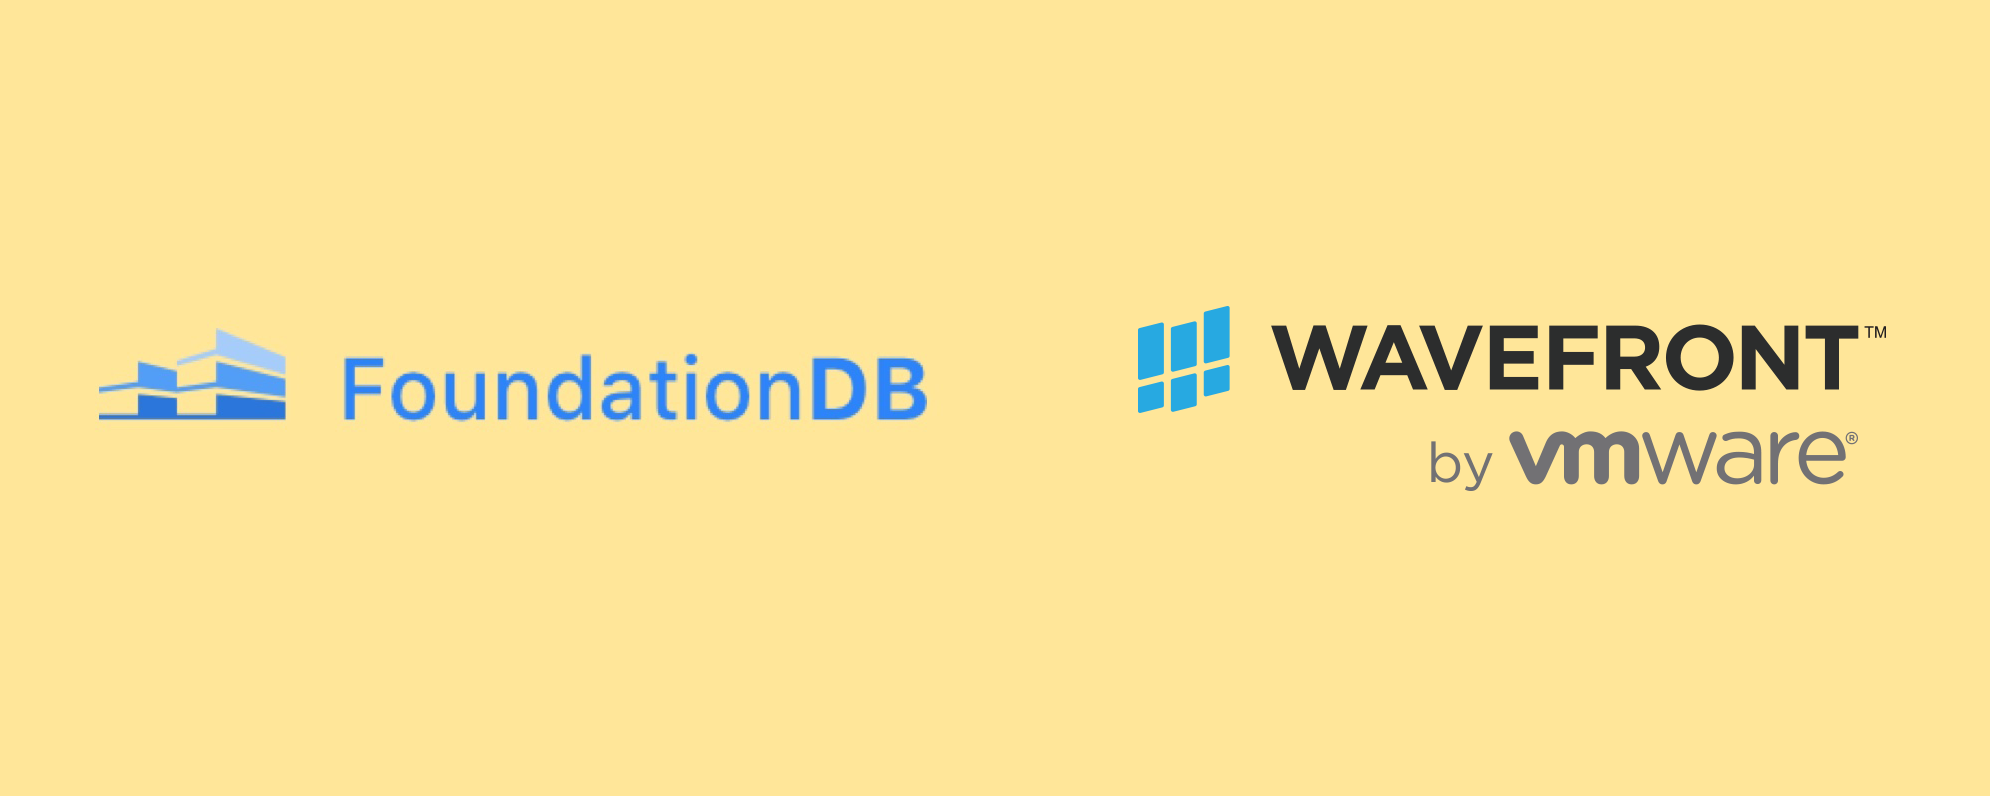 Wavefront by VMware's Ongoing Commitment to the FoundationDB Open Source Project